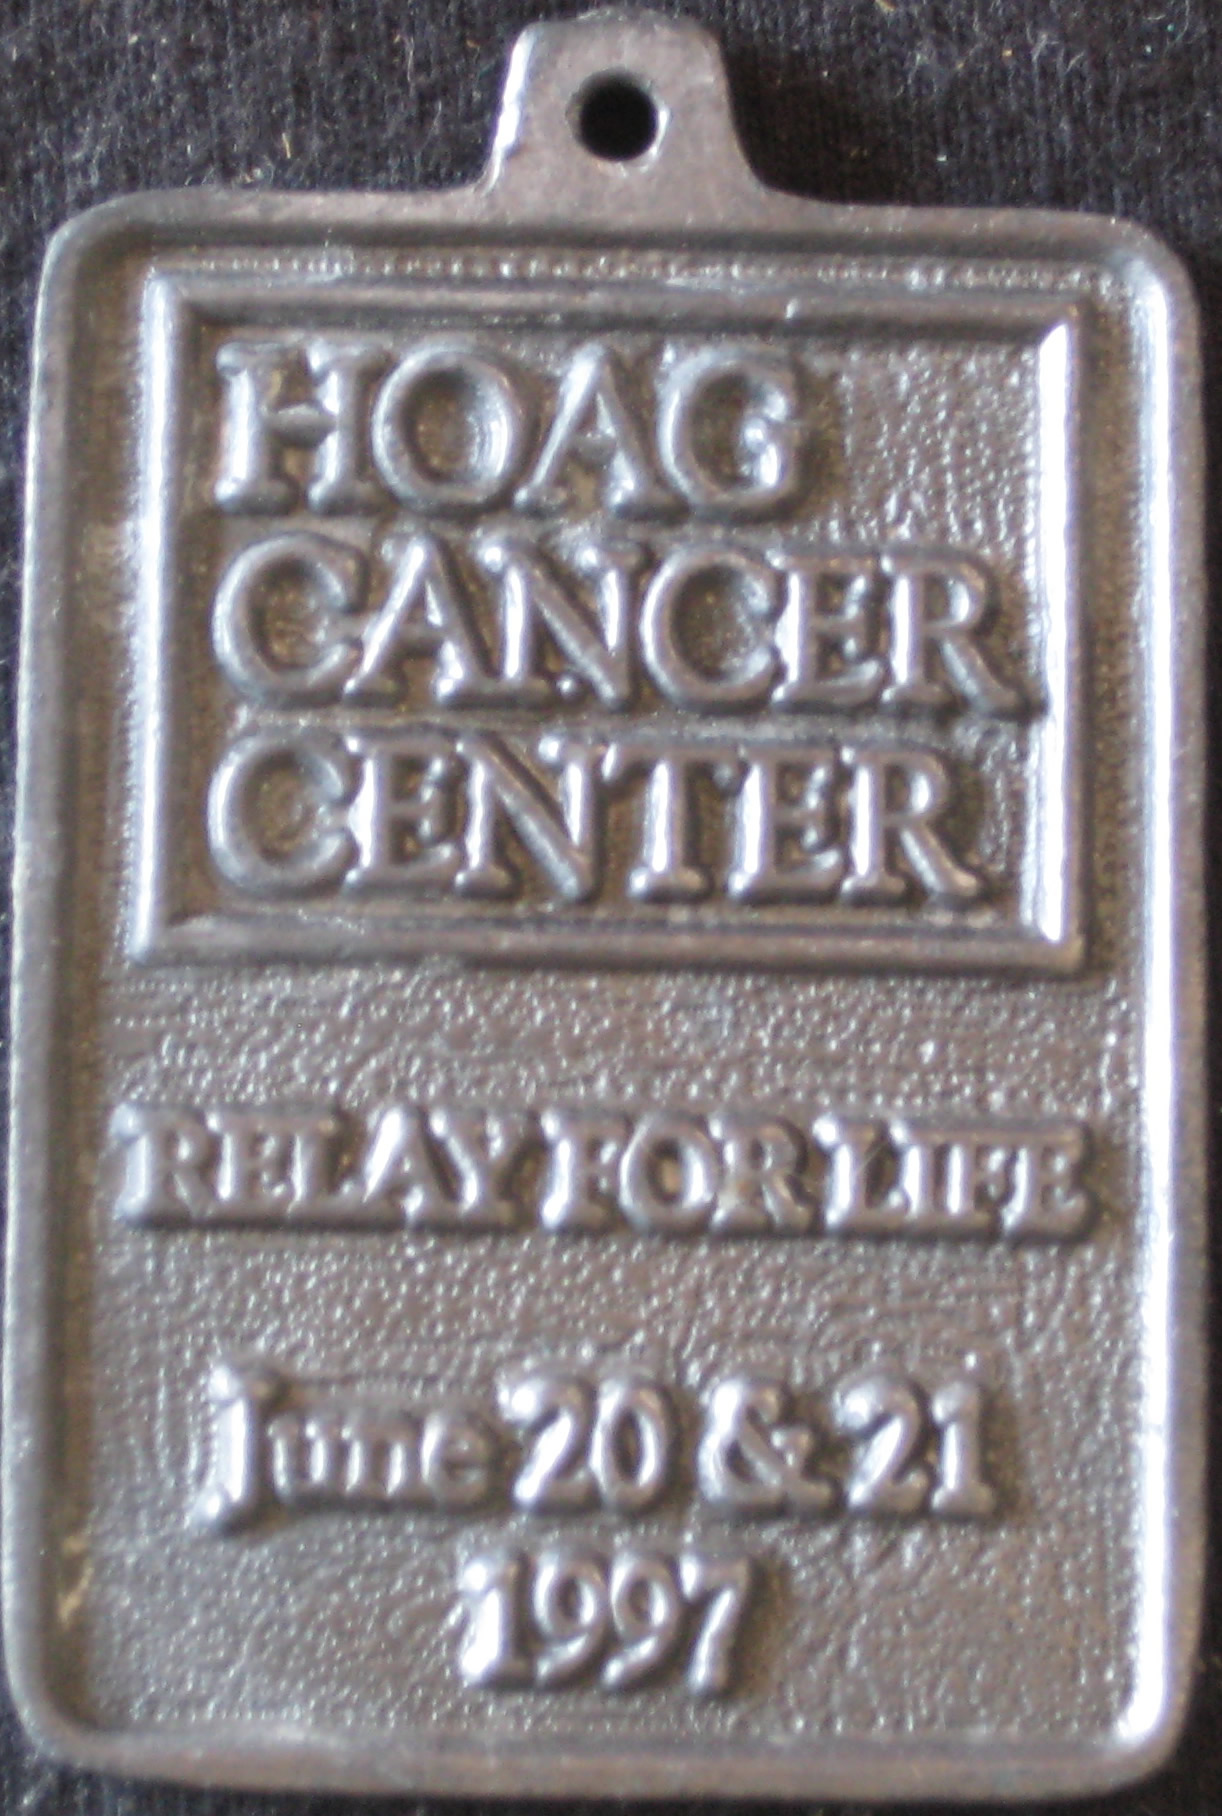 Medal -side B (1997 June 20-21) Relay for Life